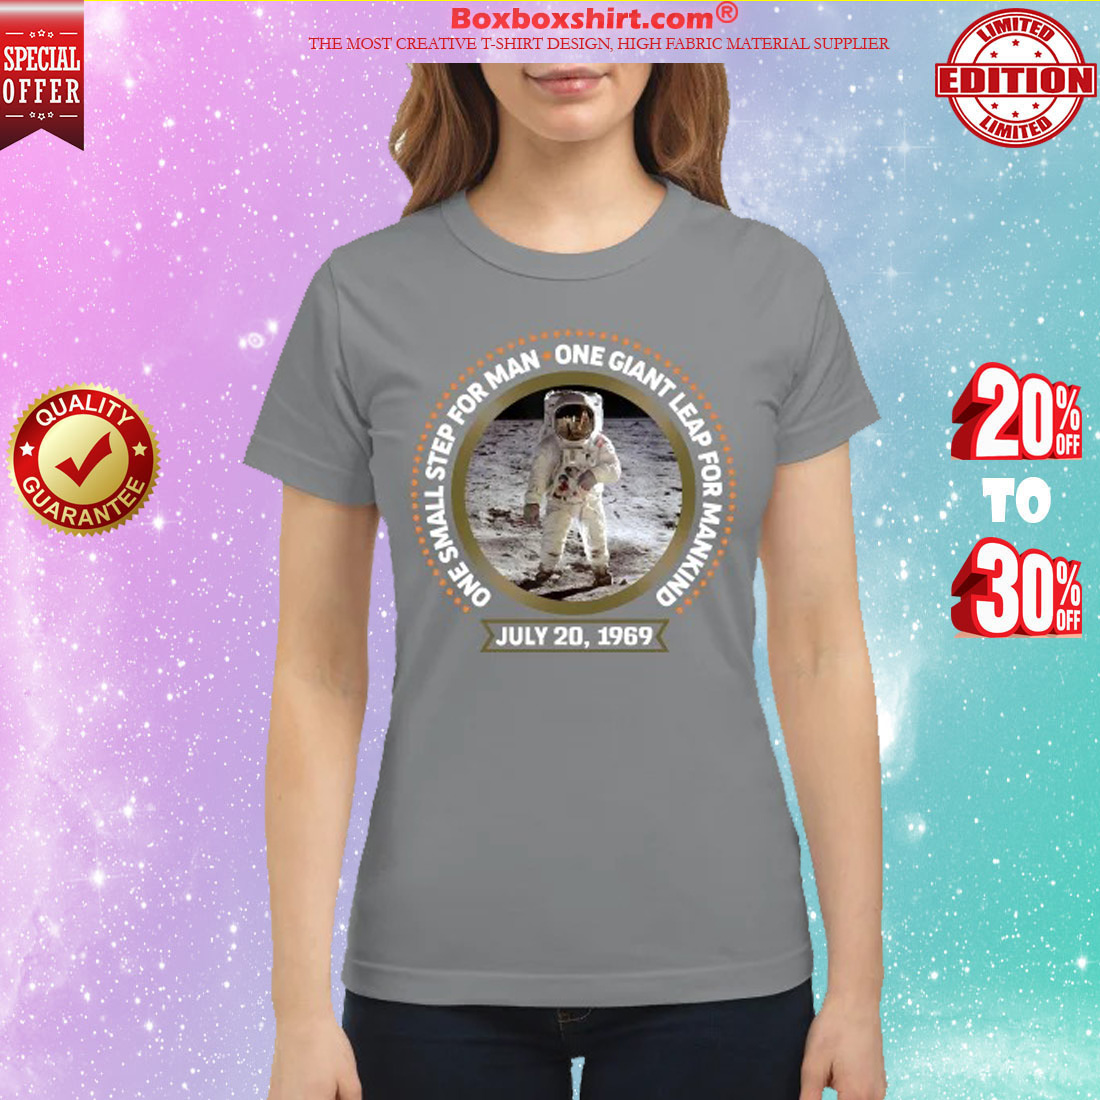 One small step for man one gaint leap for mankind classic shirt